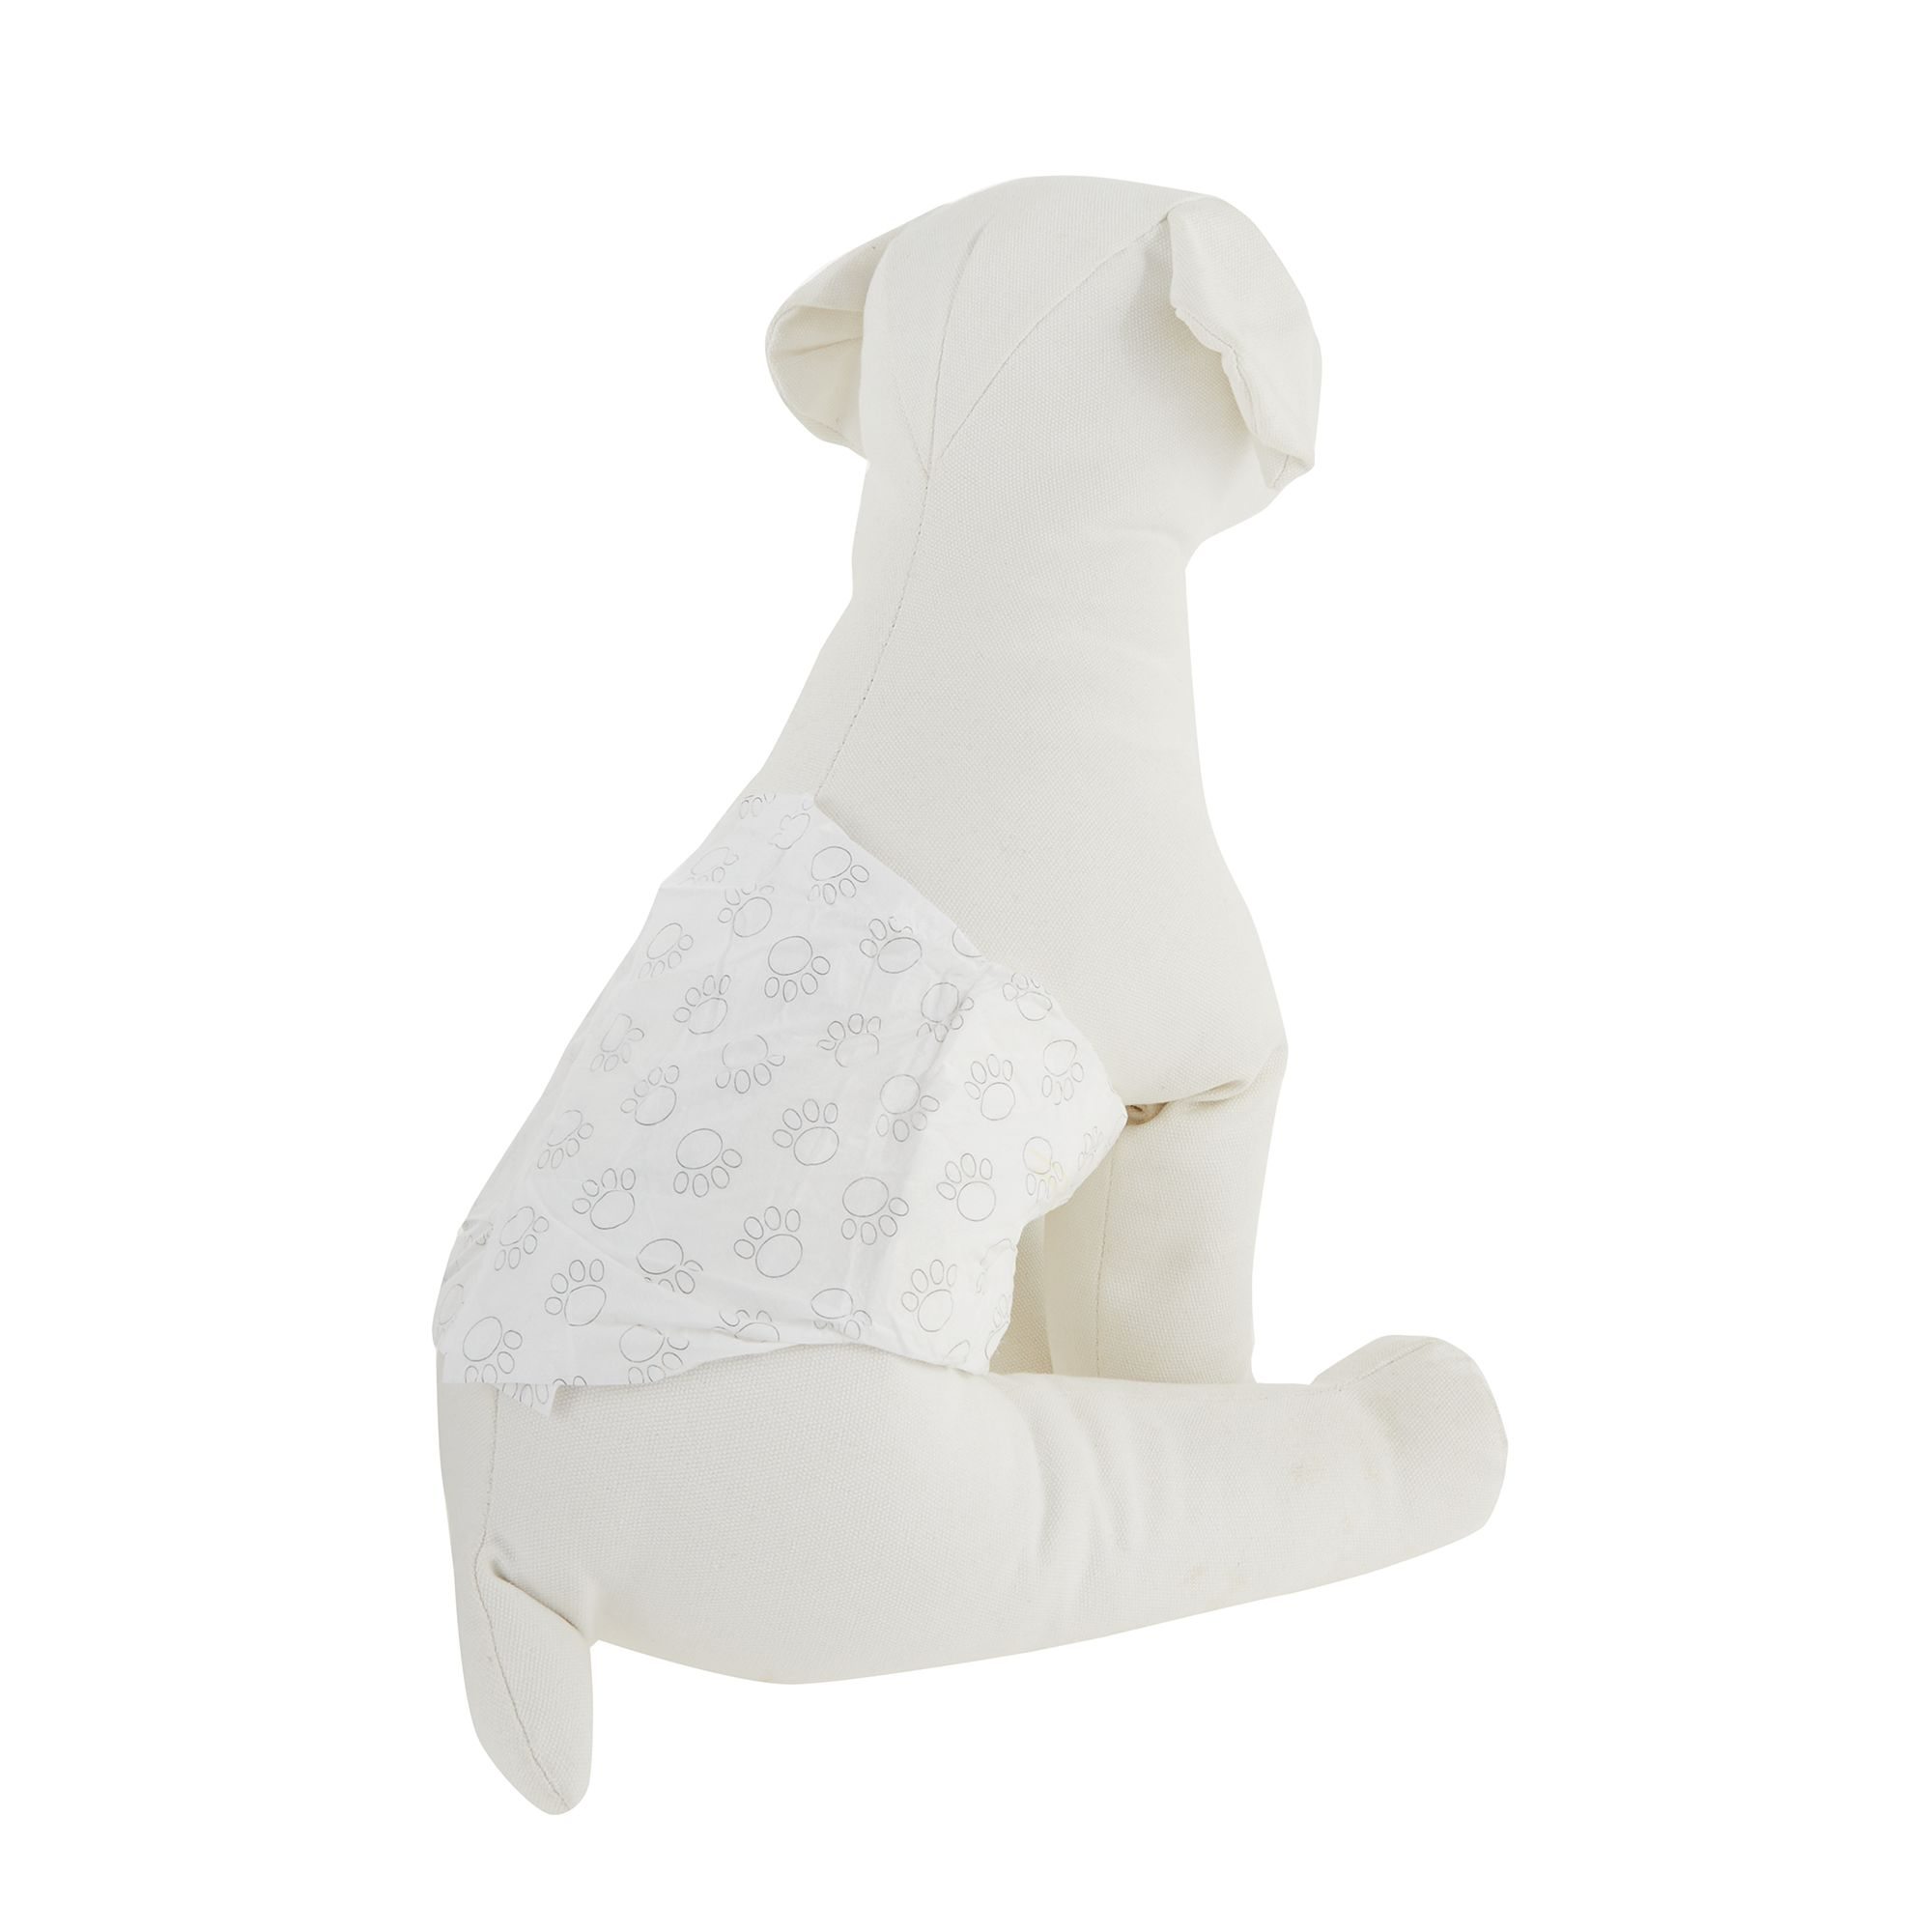 Incontinence w PUL /& All-in-One Options Male Dog Belly Band Diaper for Marking Popcorn